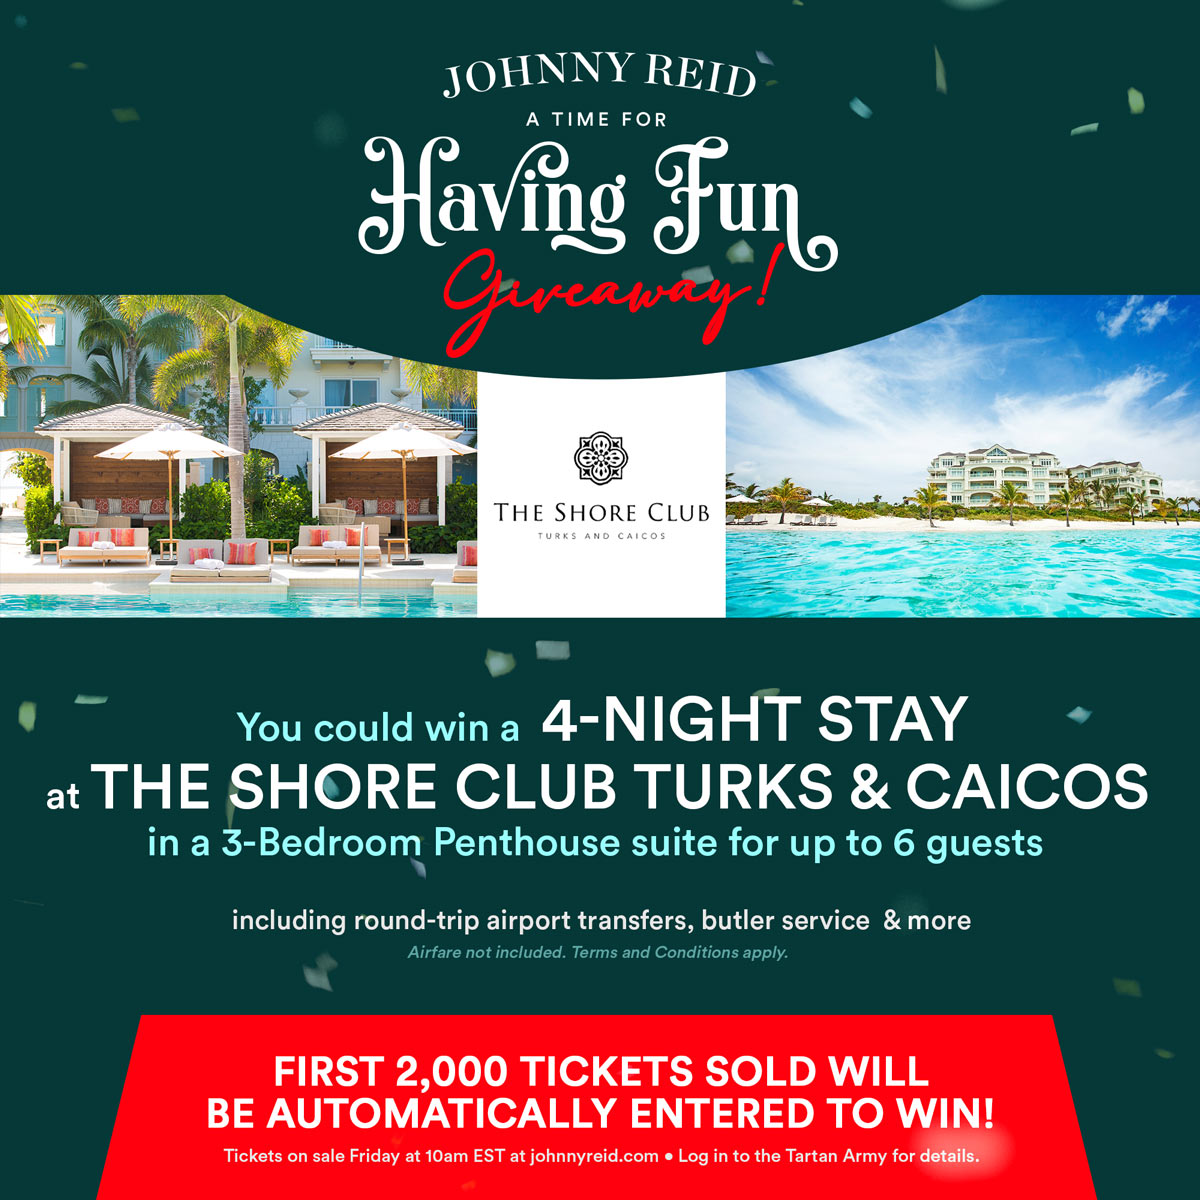 Giveaway Alert: You could win a 4-night stay at The Shore Club Turks & Caicos